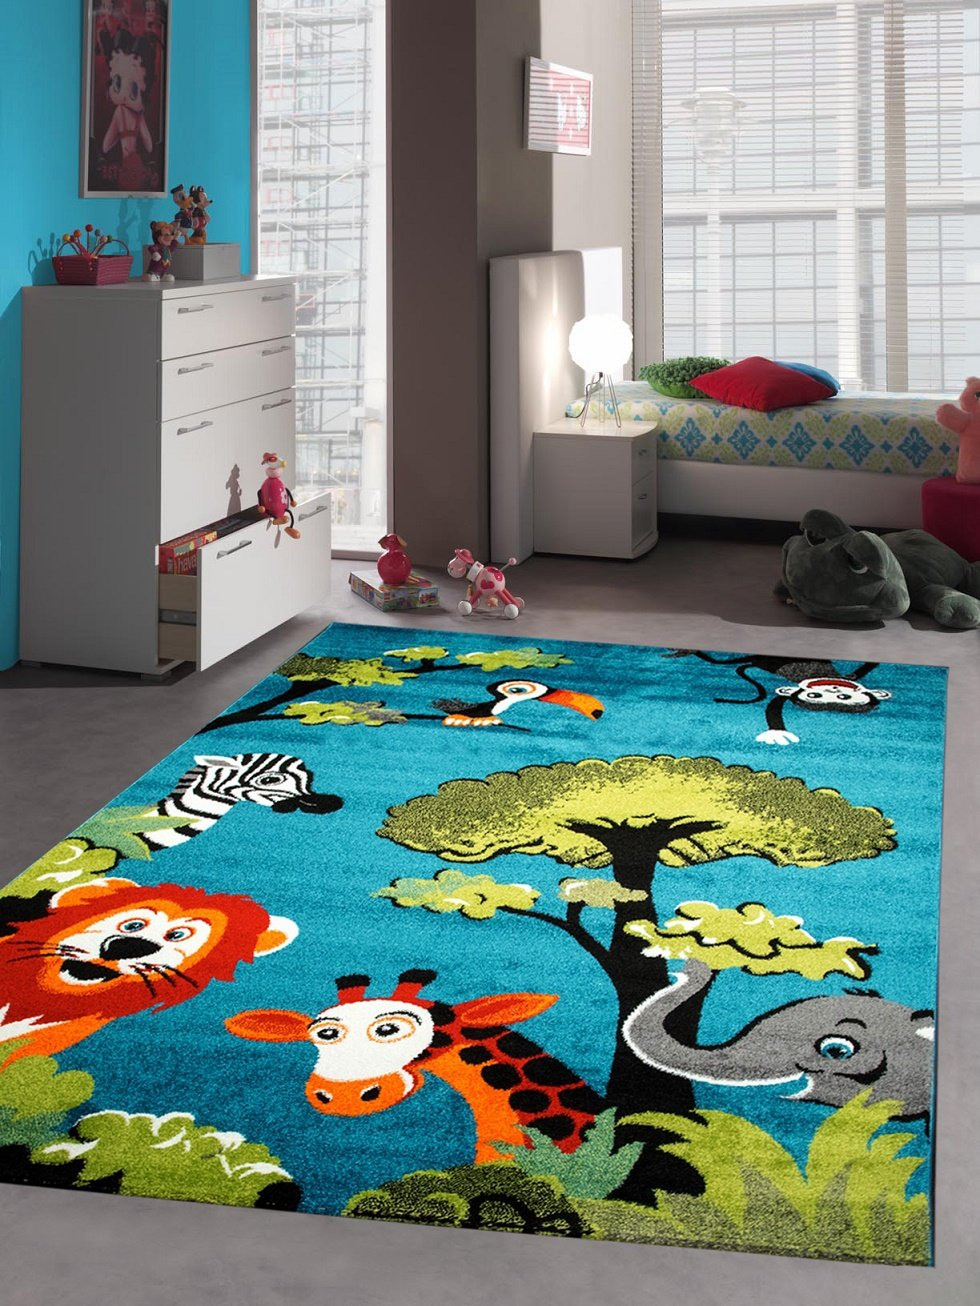 Children carpet Game carpet children rug zoo animals cute colorful animals Elephant Giraffe Lion Monkey Zebra Turquoise Orange Green Gray Red Creme Black size 80x150 cm Traum